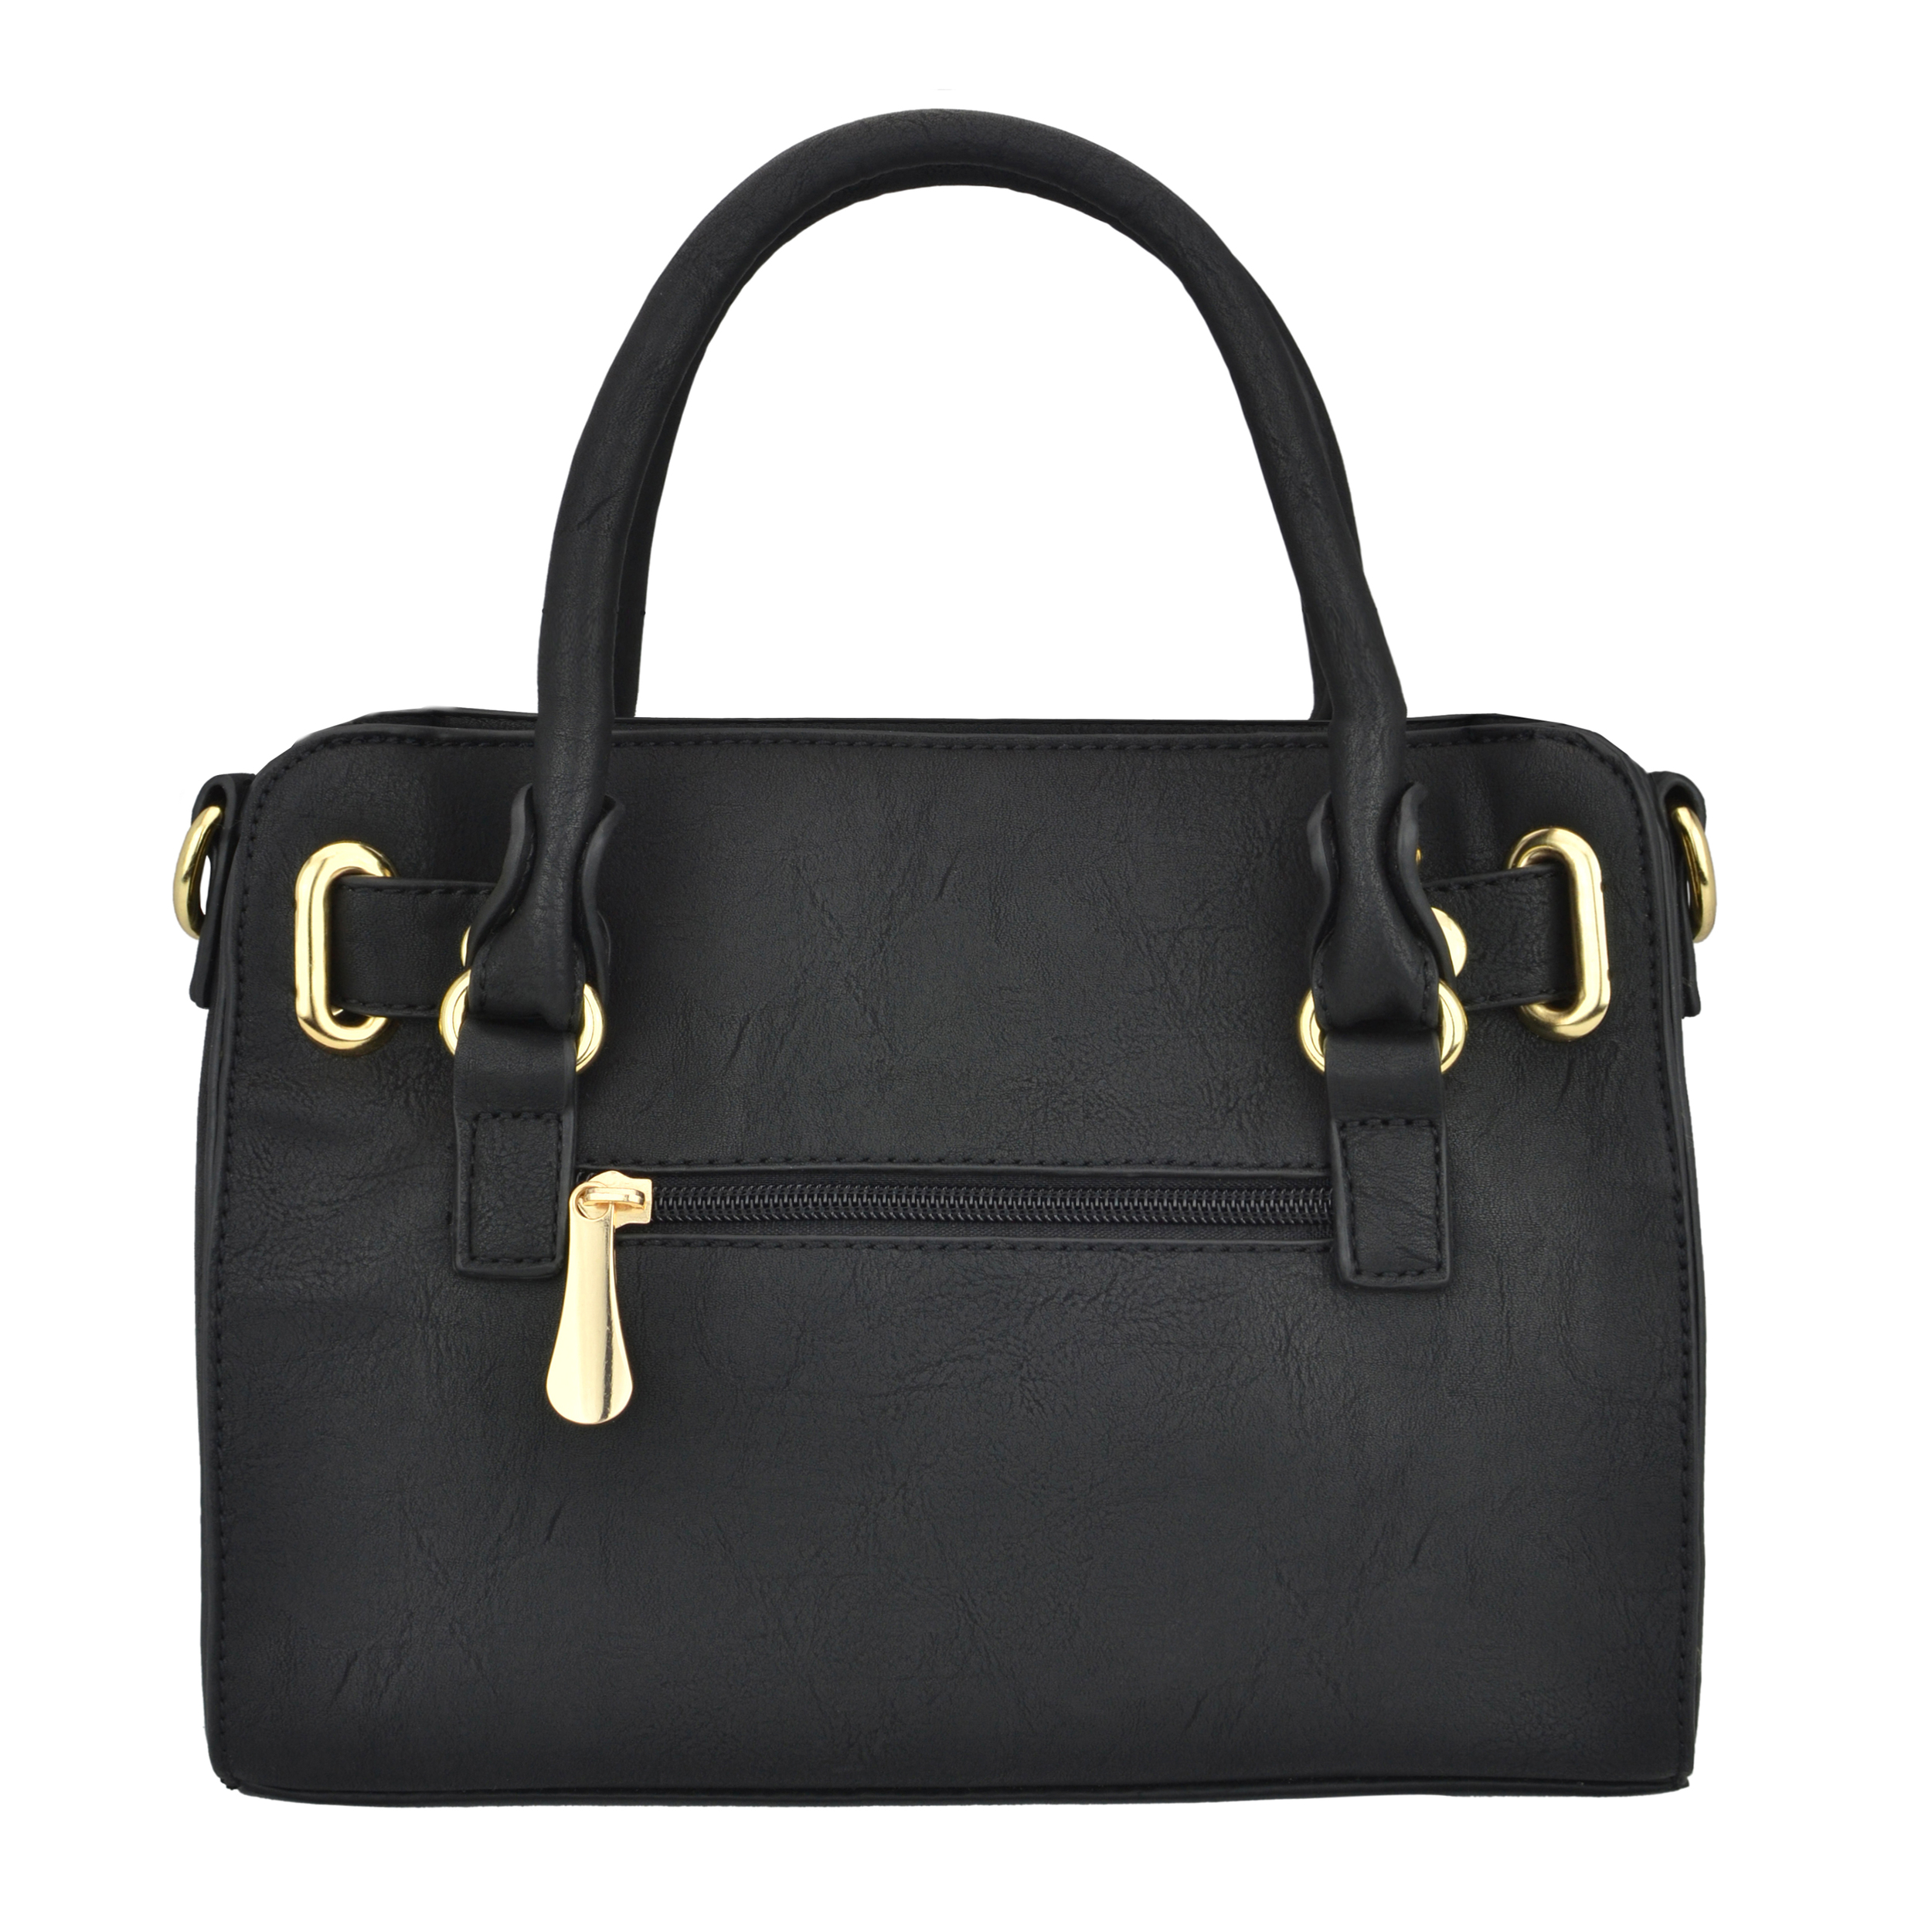 NERYS black top handle tote purse back image